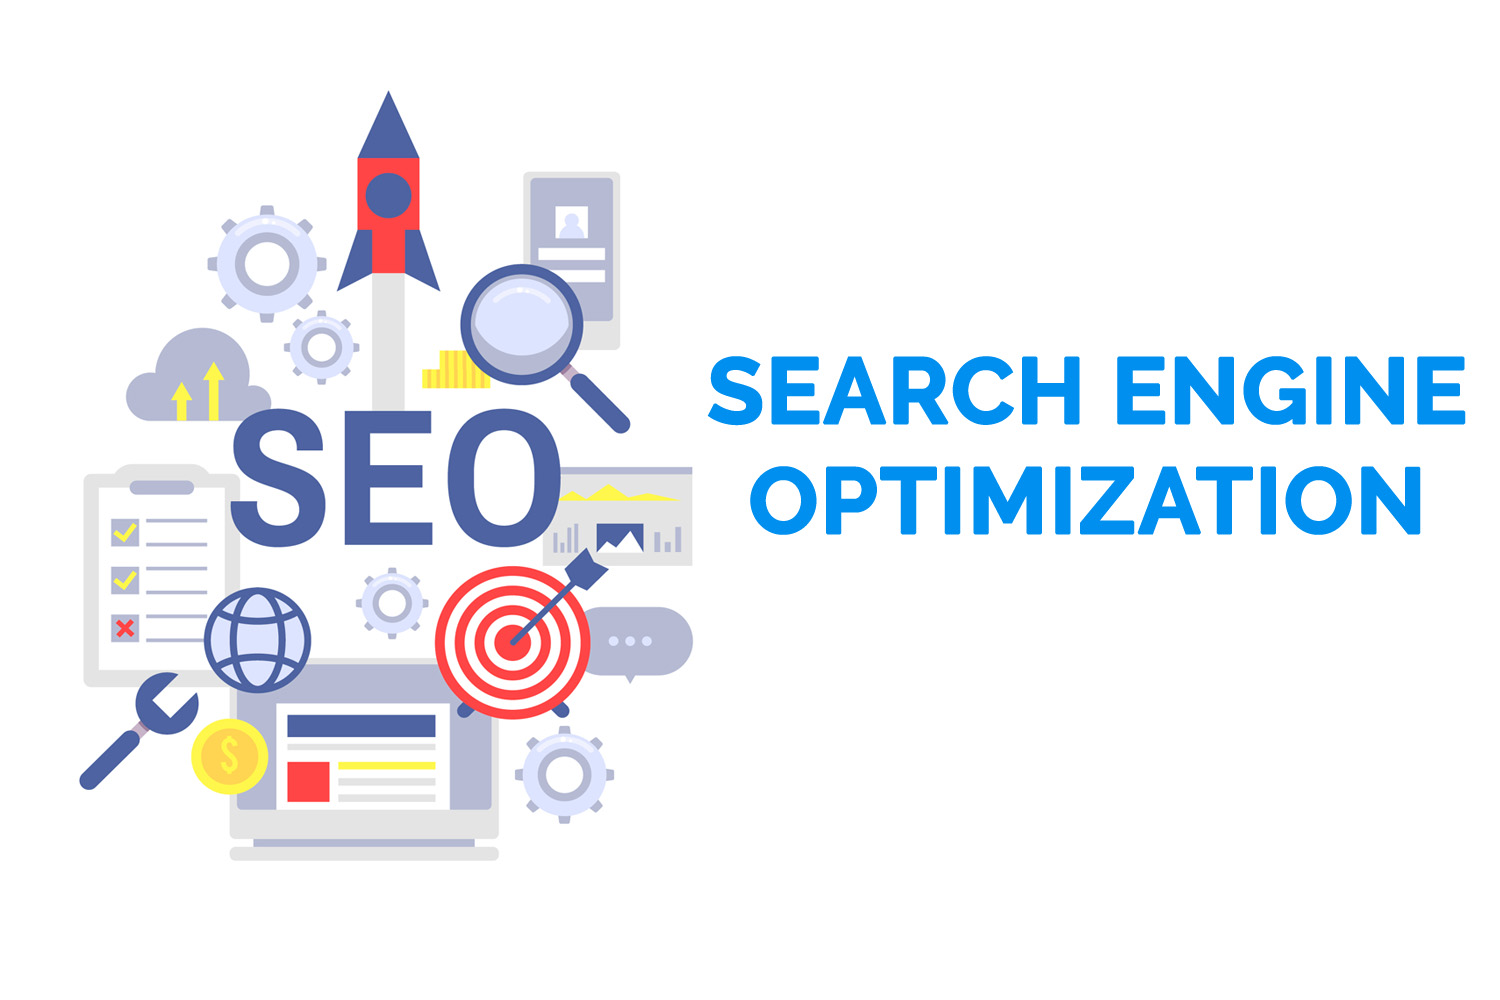 Web Marketing - Search engine optimization - seo agentie timisoara - Inkon Agency - Servicii de optimizare SEO Timiaora - Optimizare SEO site - Optimizare Web site - Optimizare Pagina web